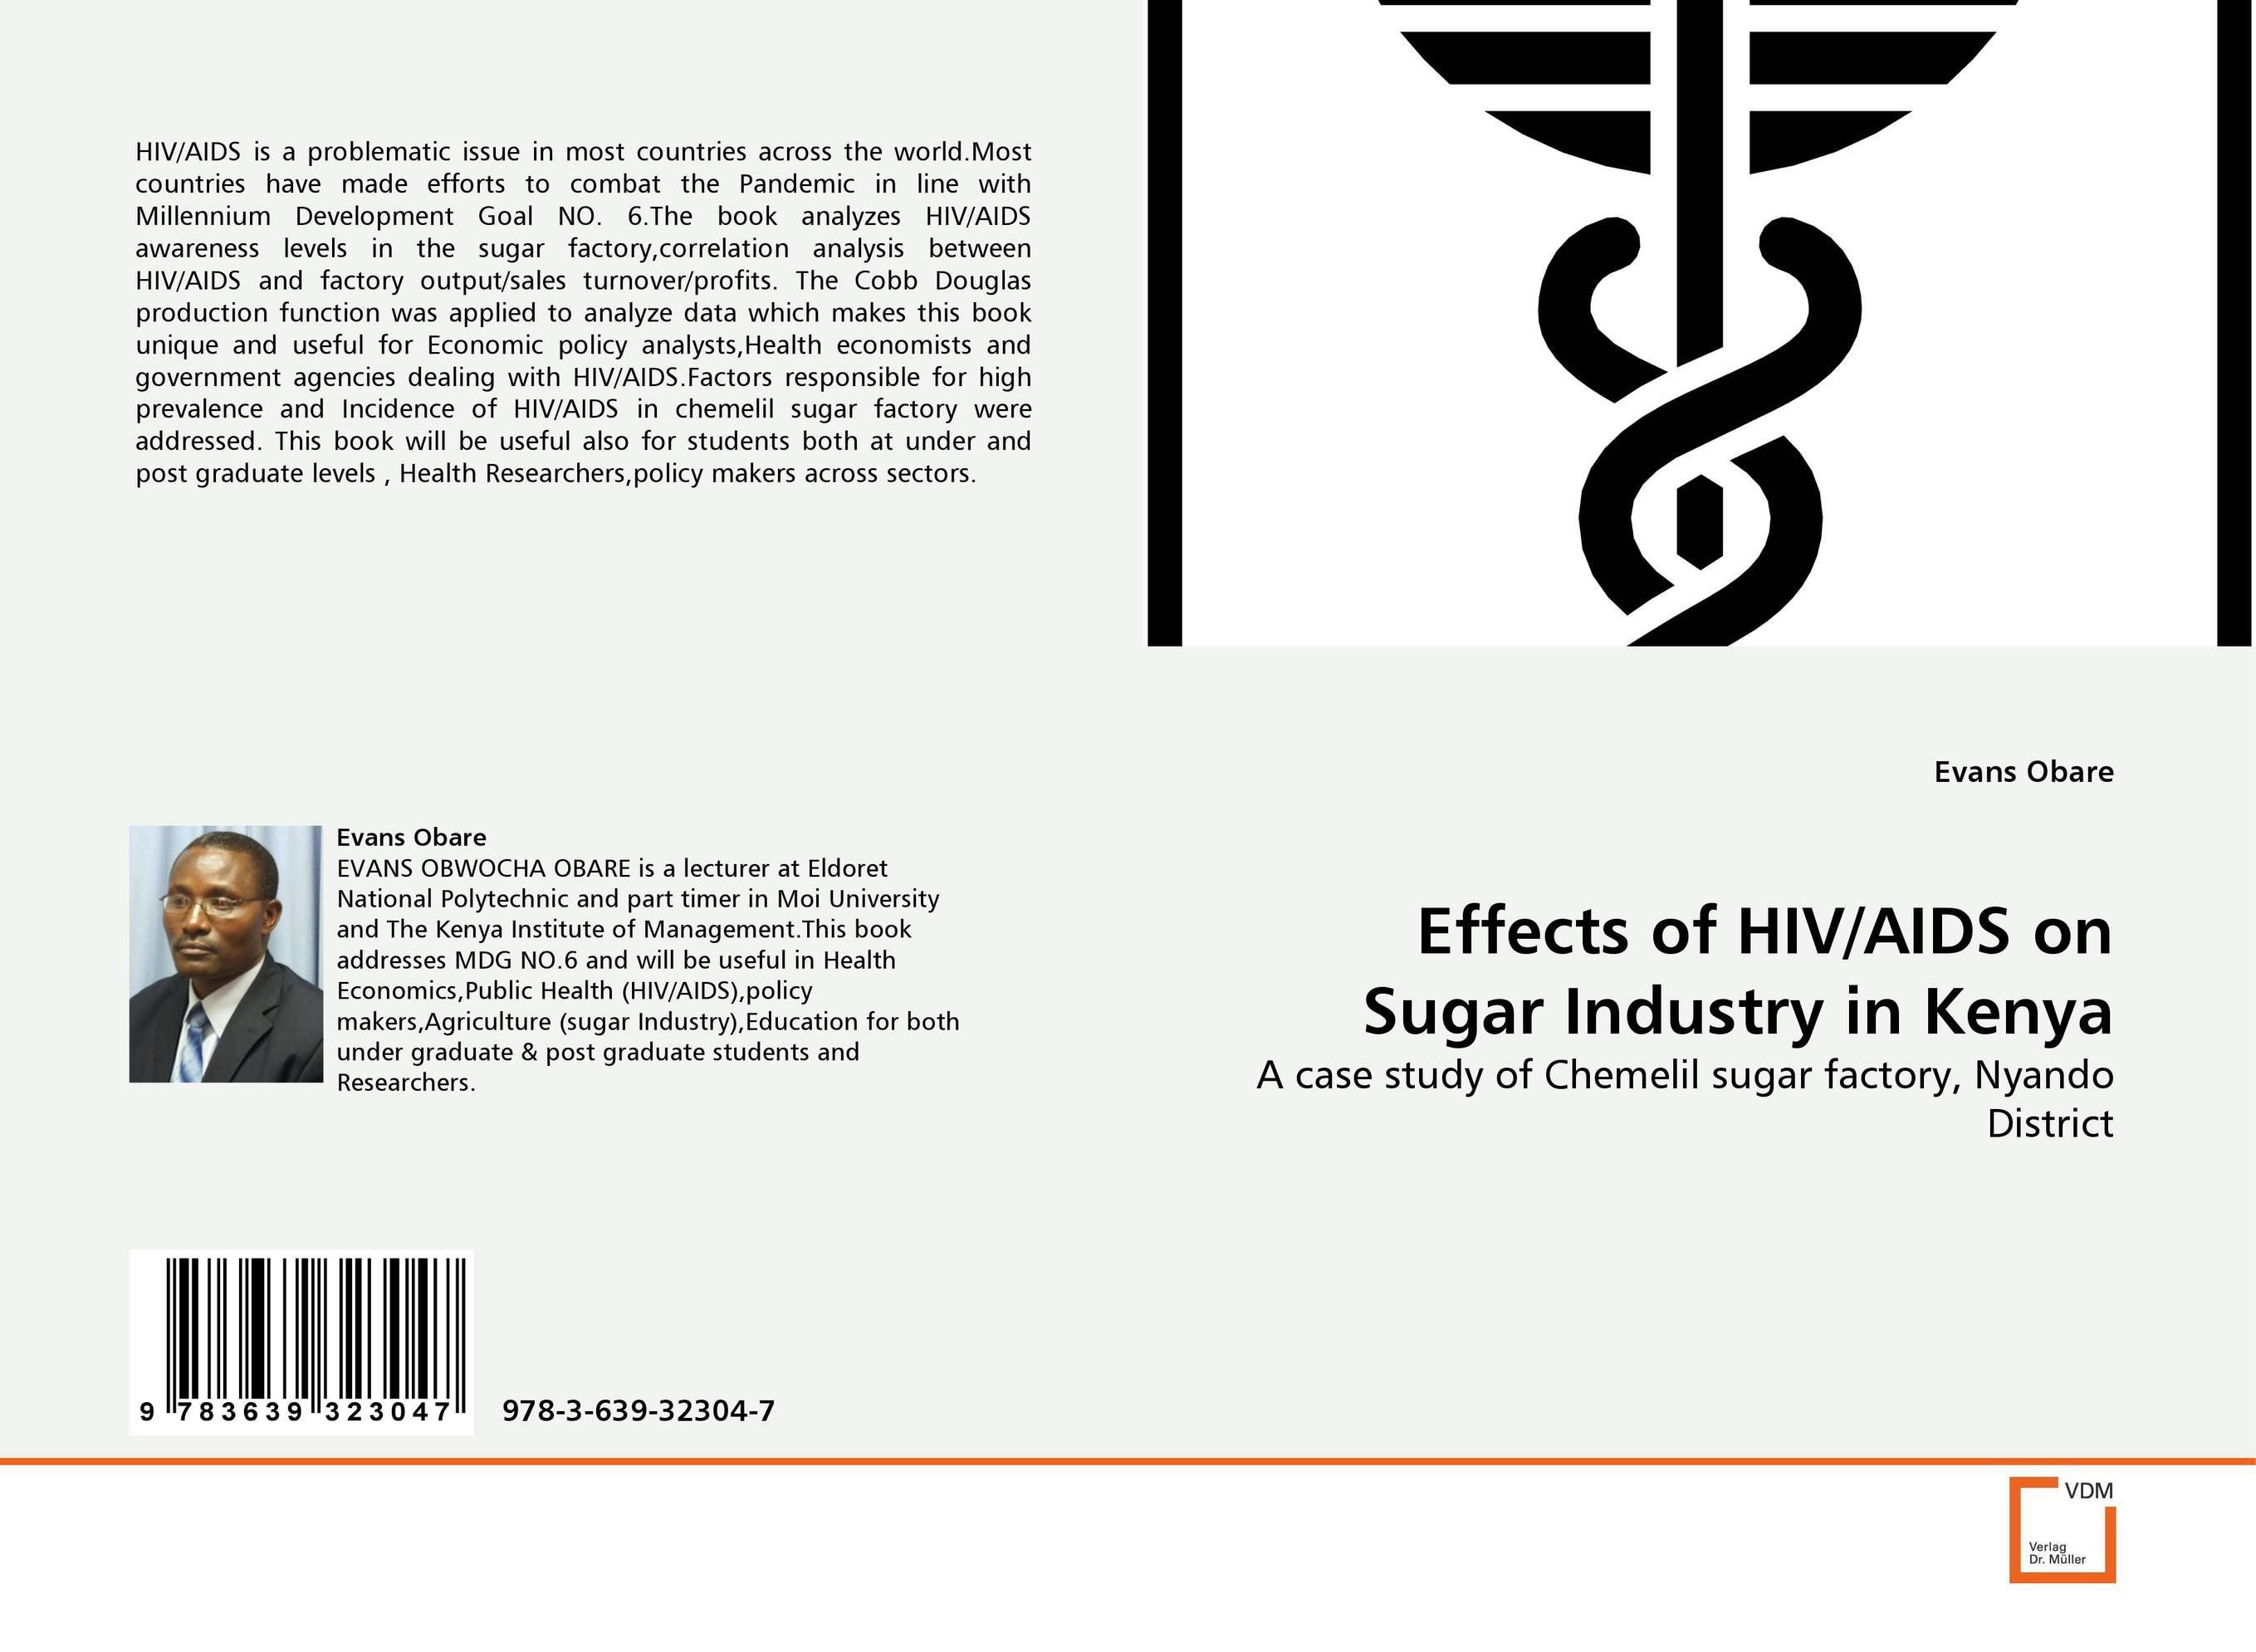 Effects of HIV/AIDS on Sugar Industry in Kenya hiv aids in manipur